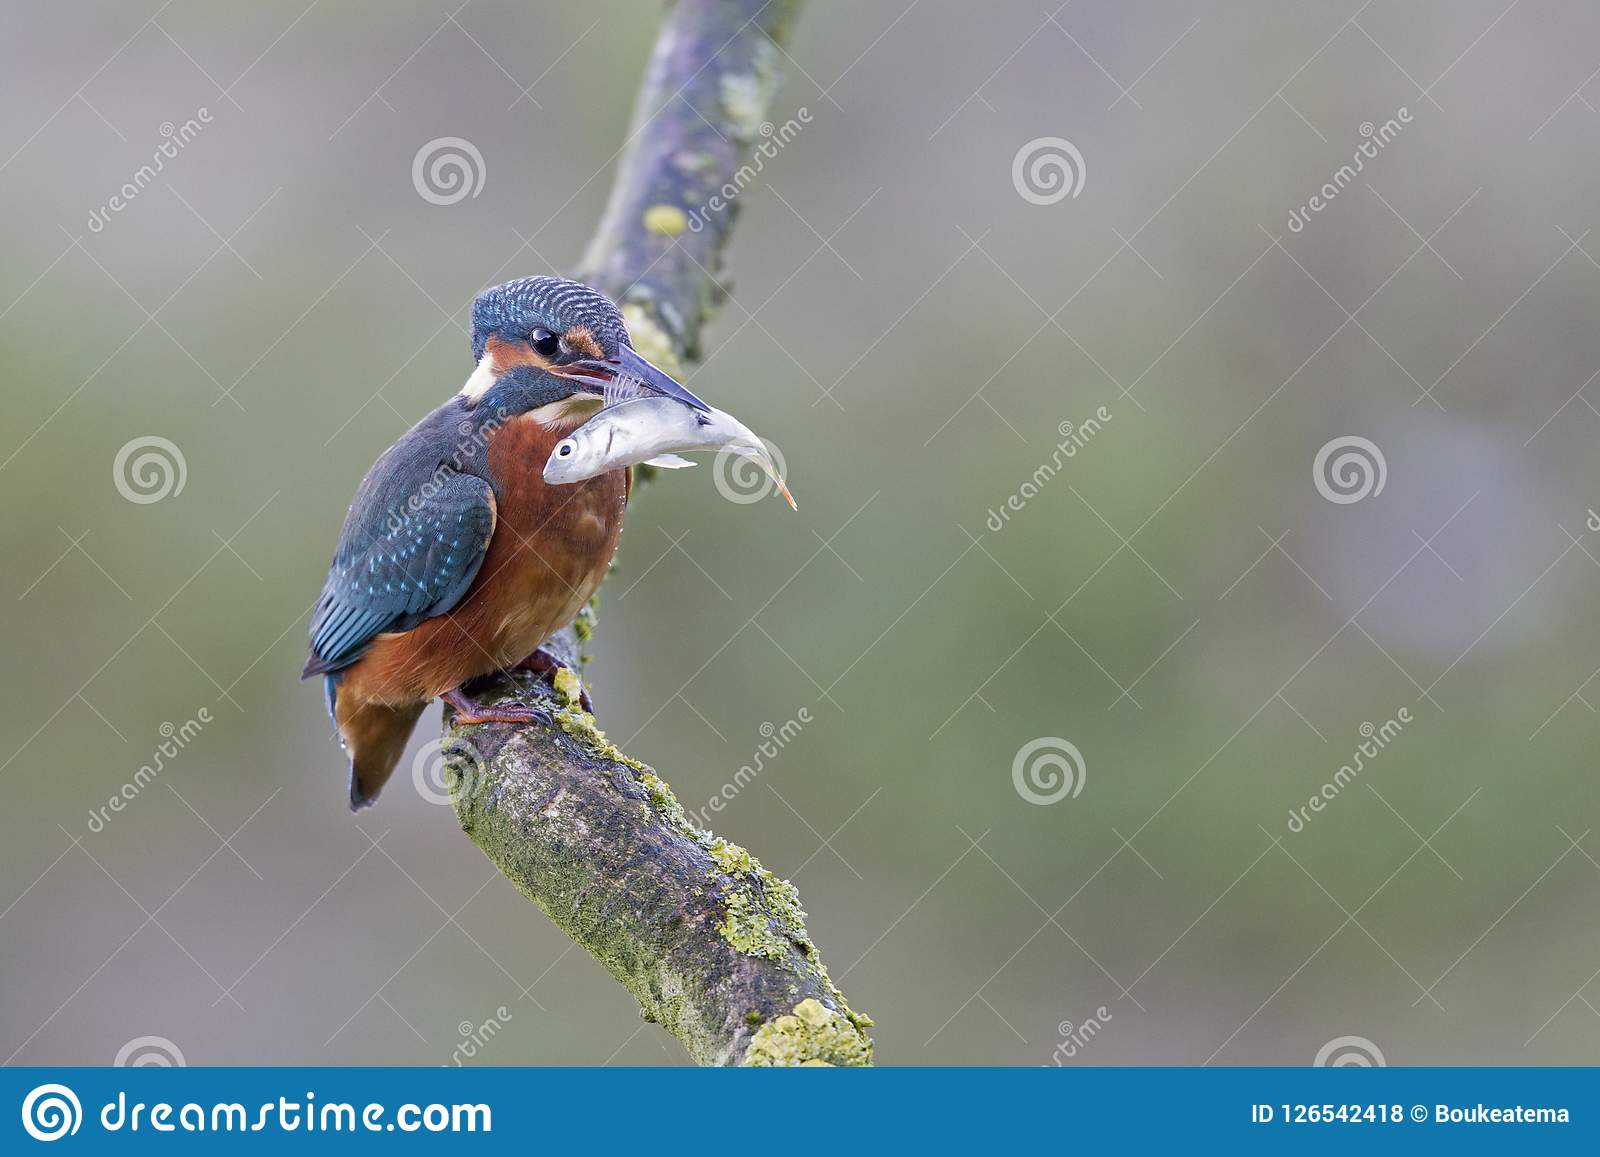 A Common Kingfisher alcedo atthis perched on a branch with a small fish in its beak.